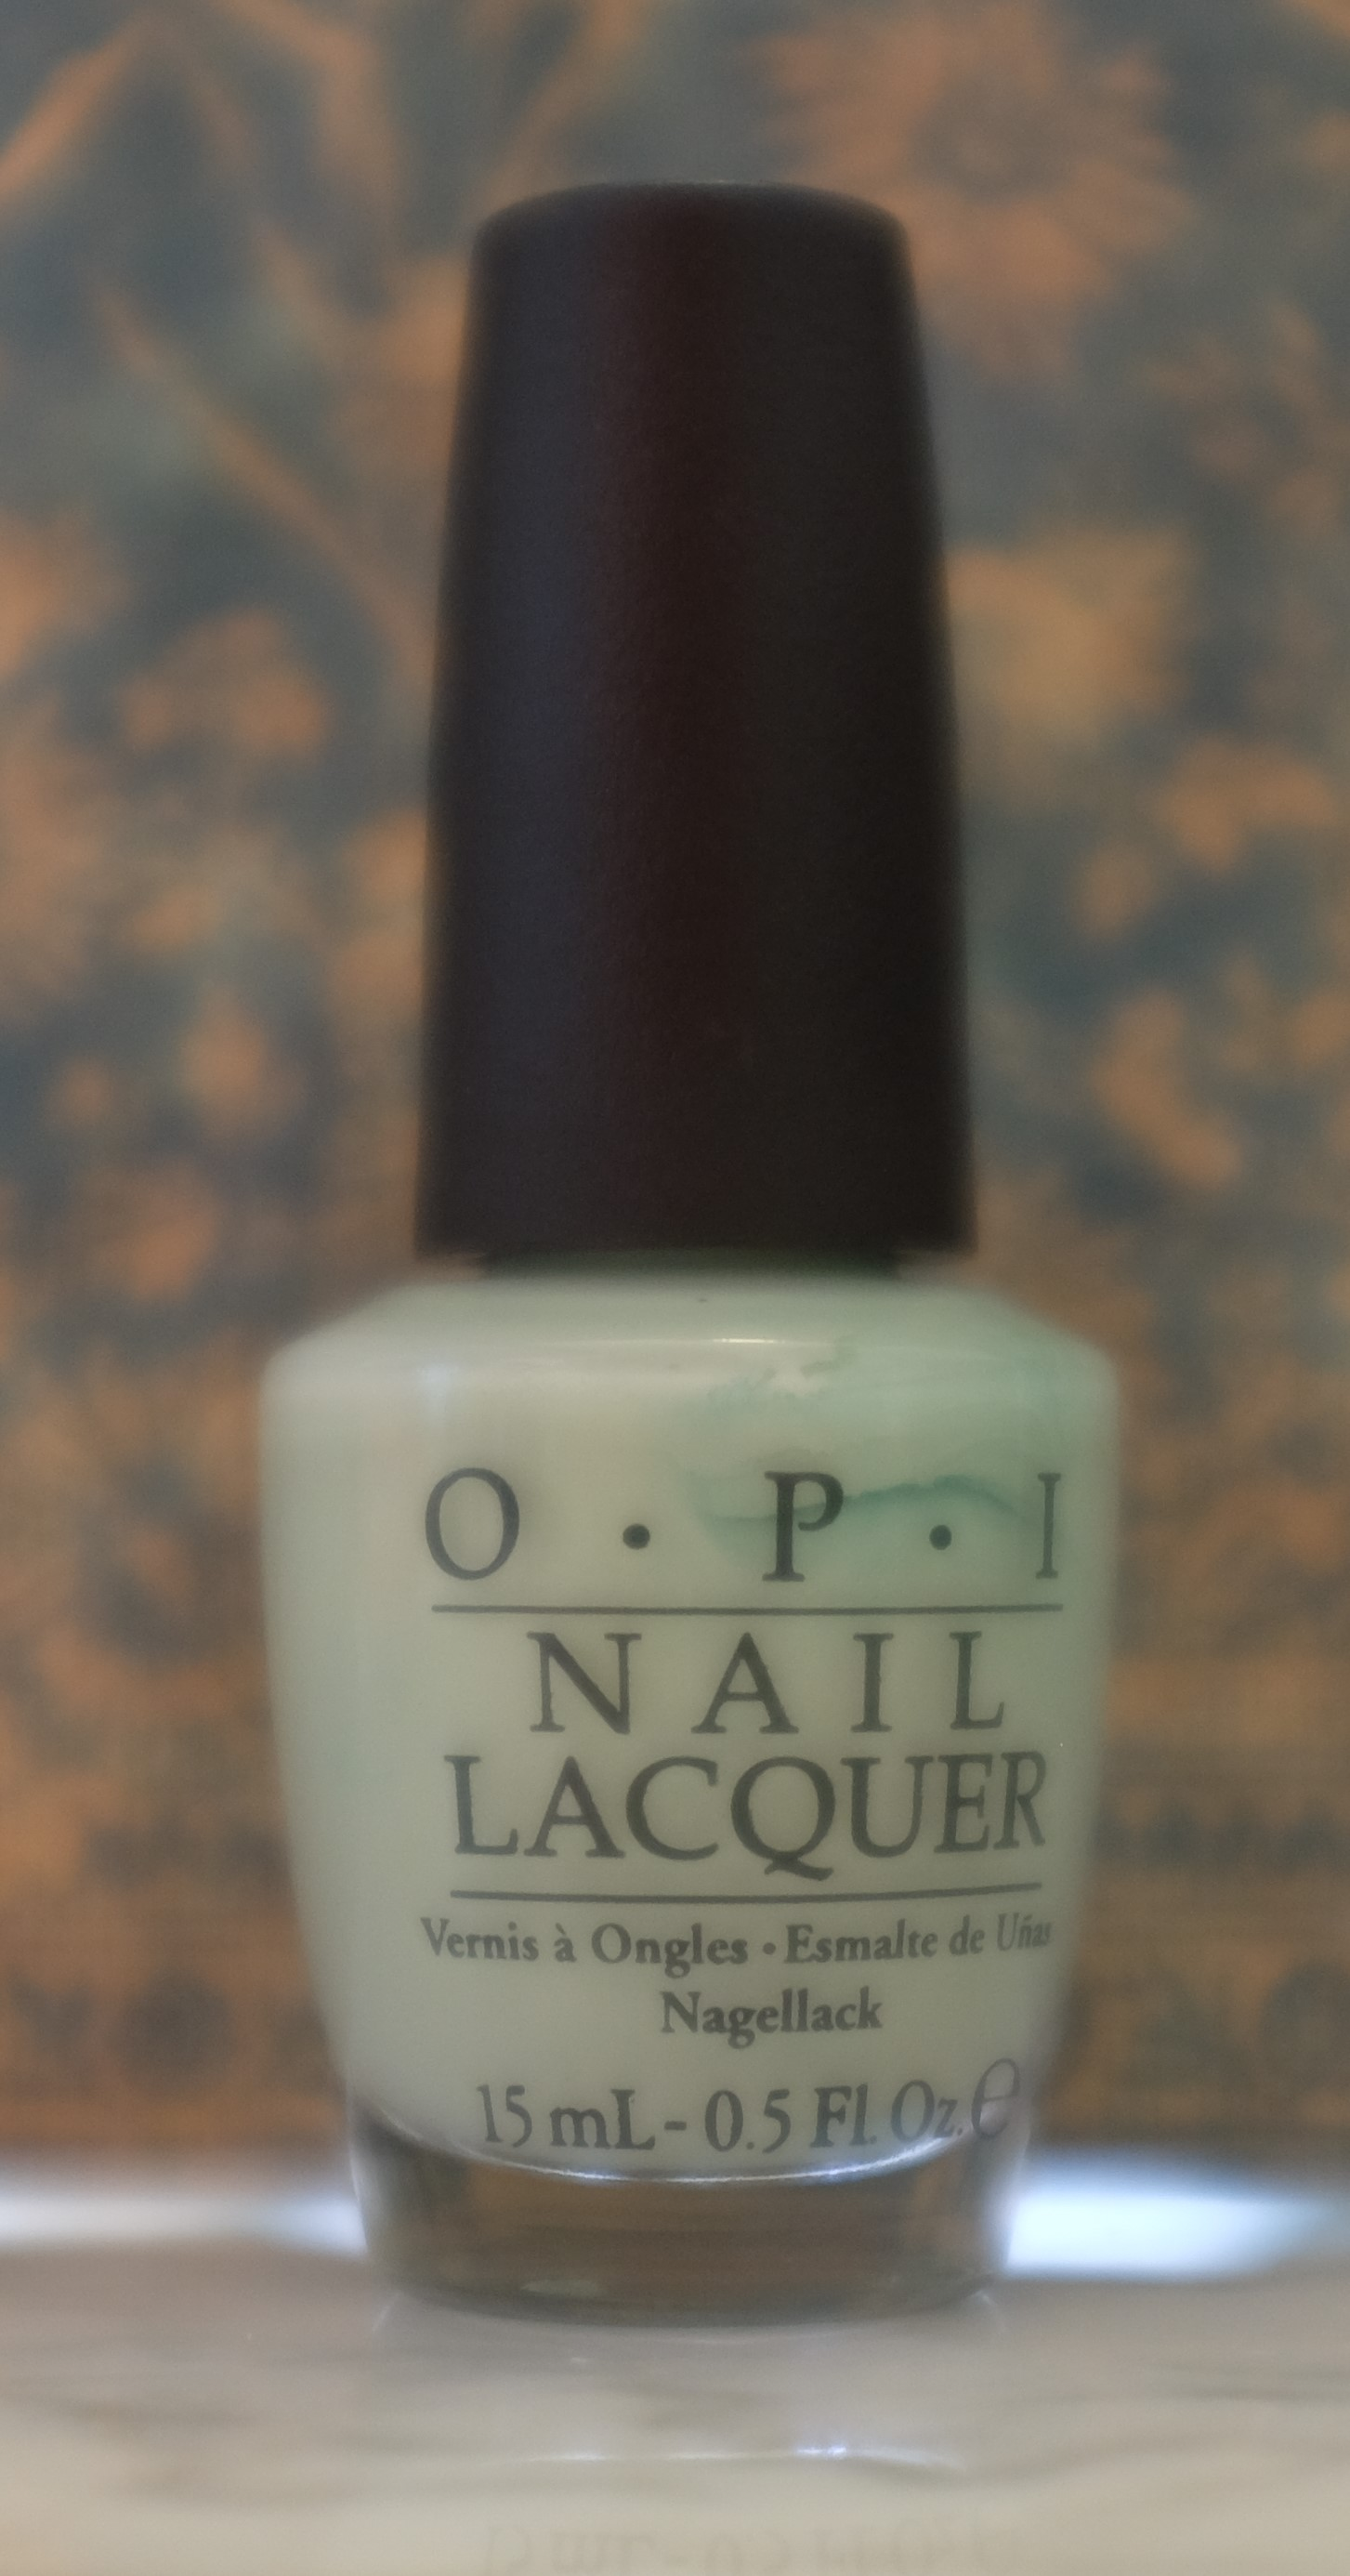 OPI This Cost Me a Mint sold by Pladypus' Nail Polish Shop